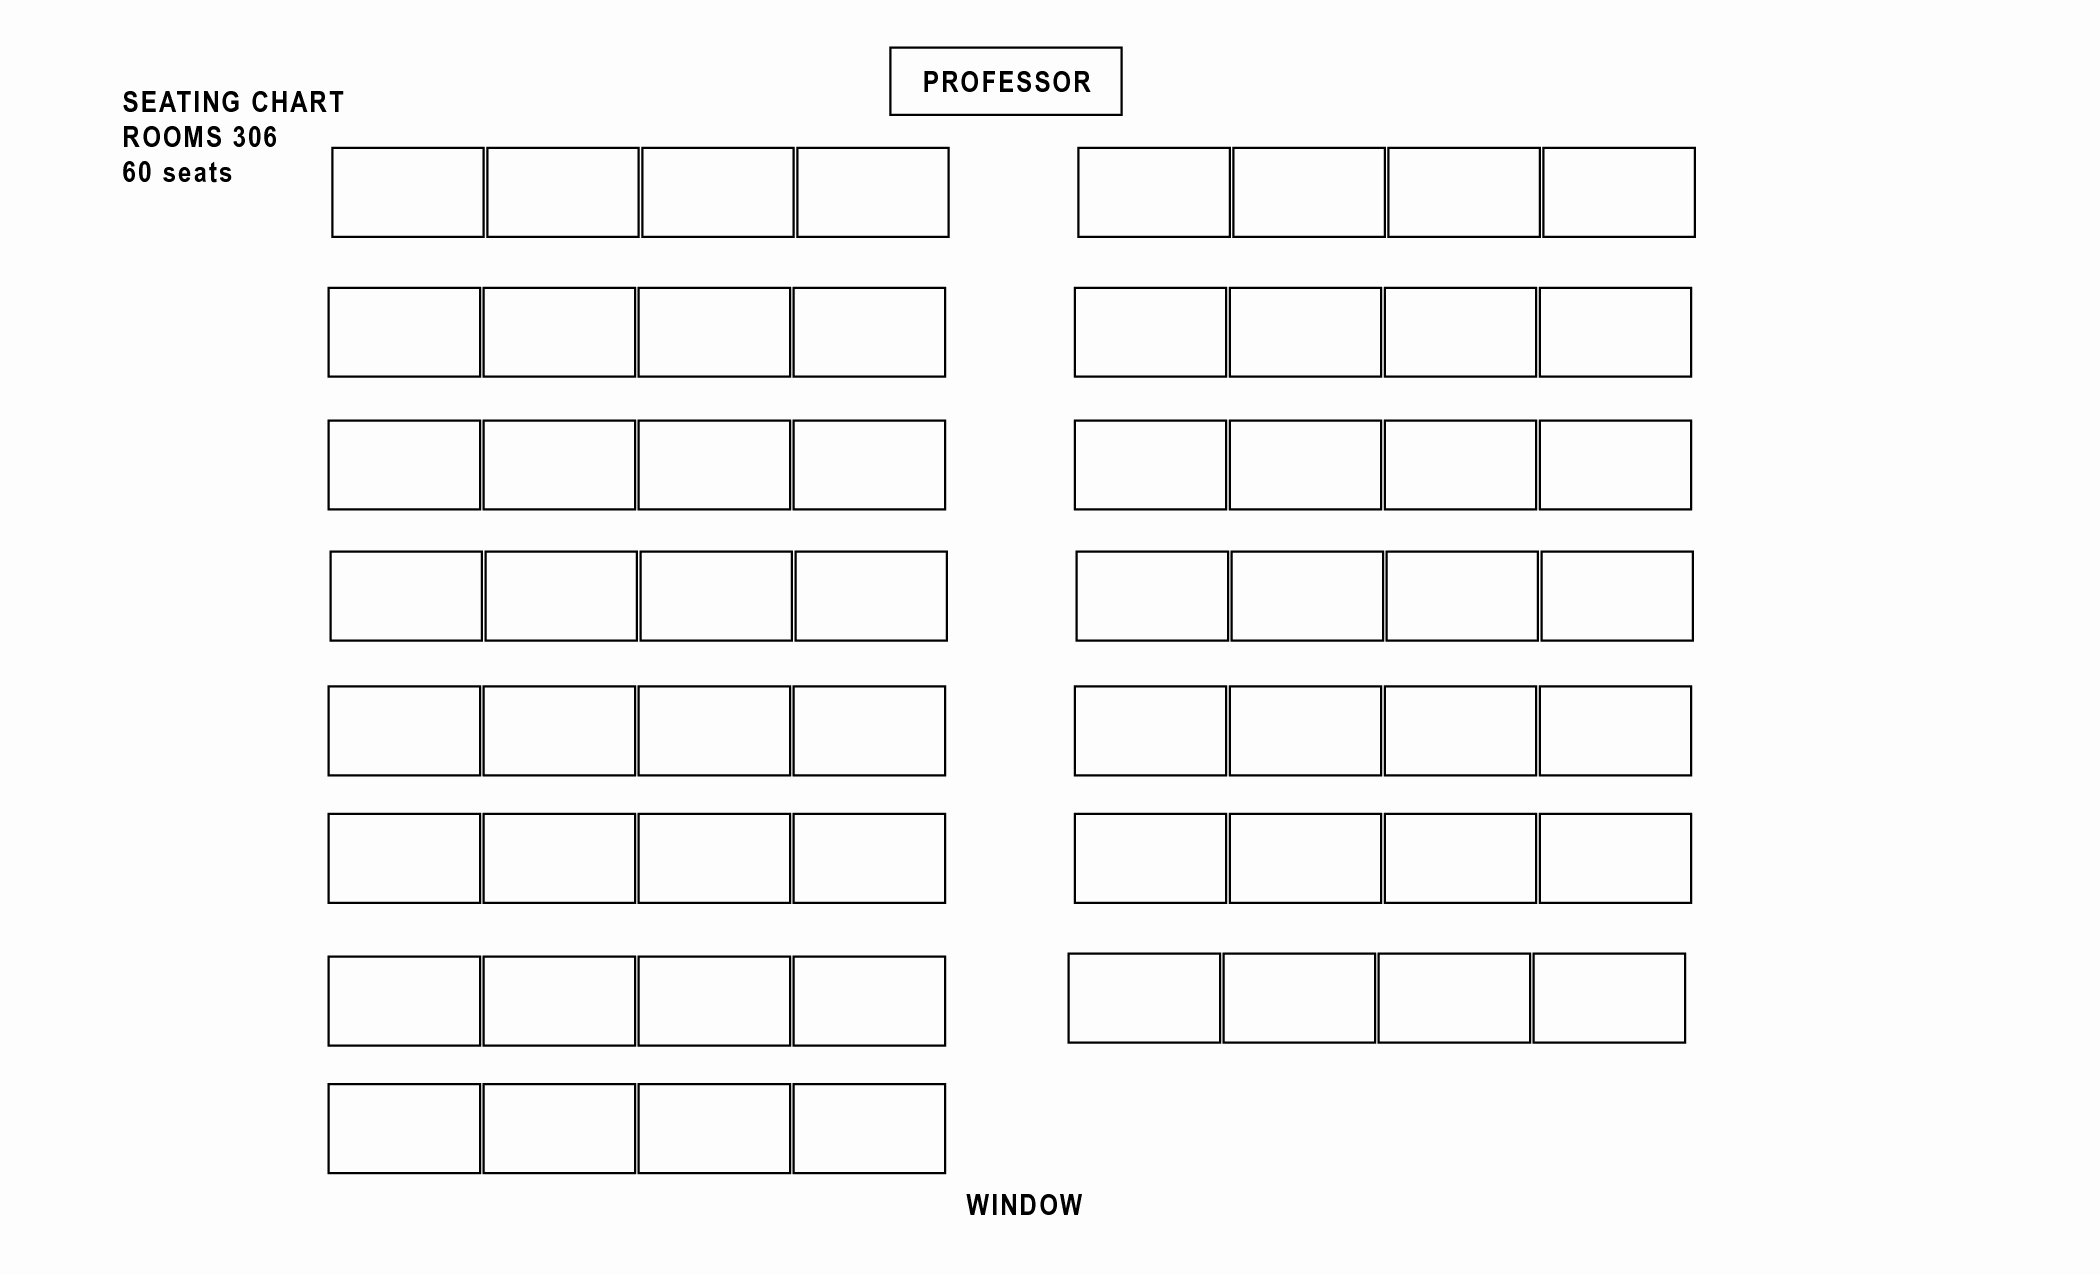 Seating Charts Templates for Classrooms Unique Classroom Seating Chart Templates Portablegasgrillweber